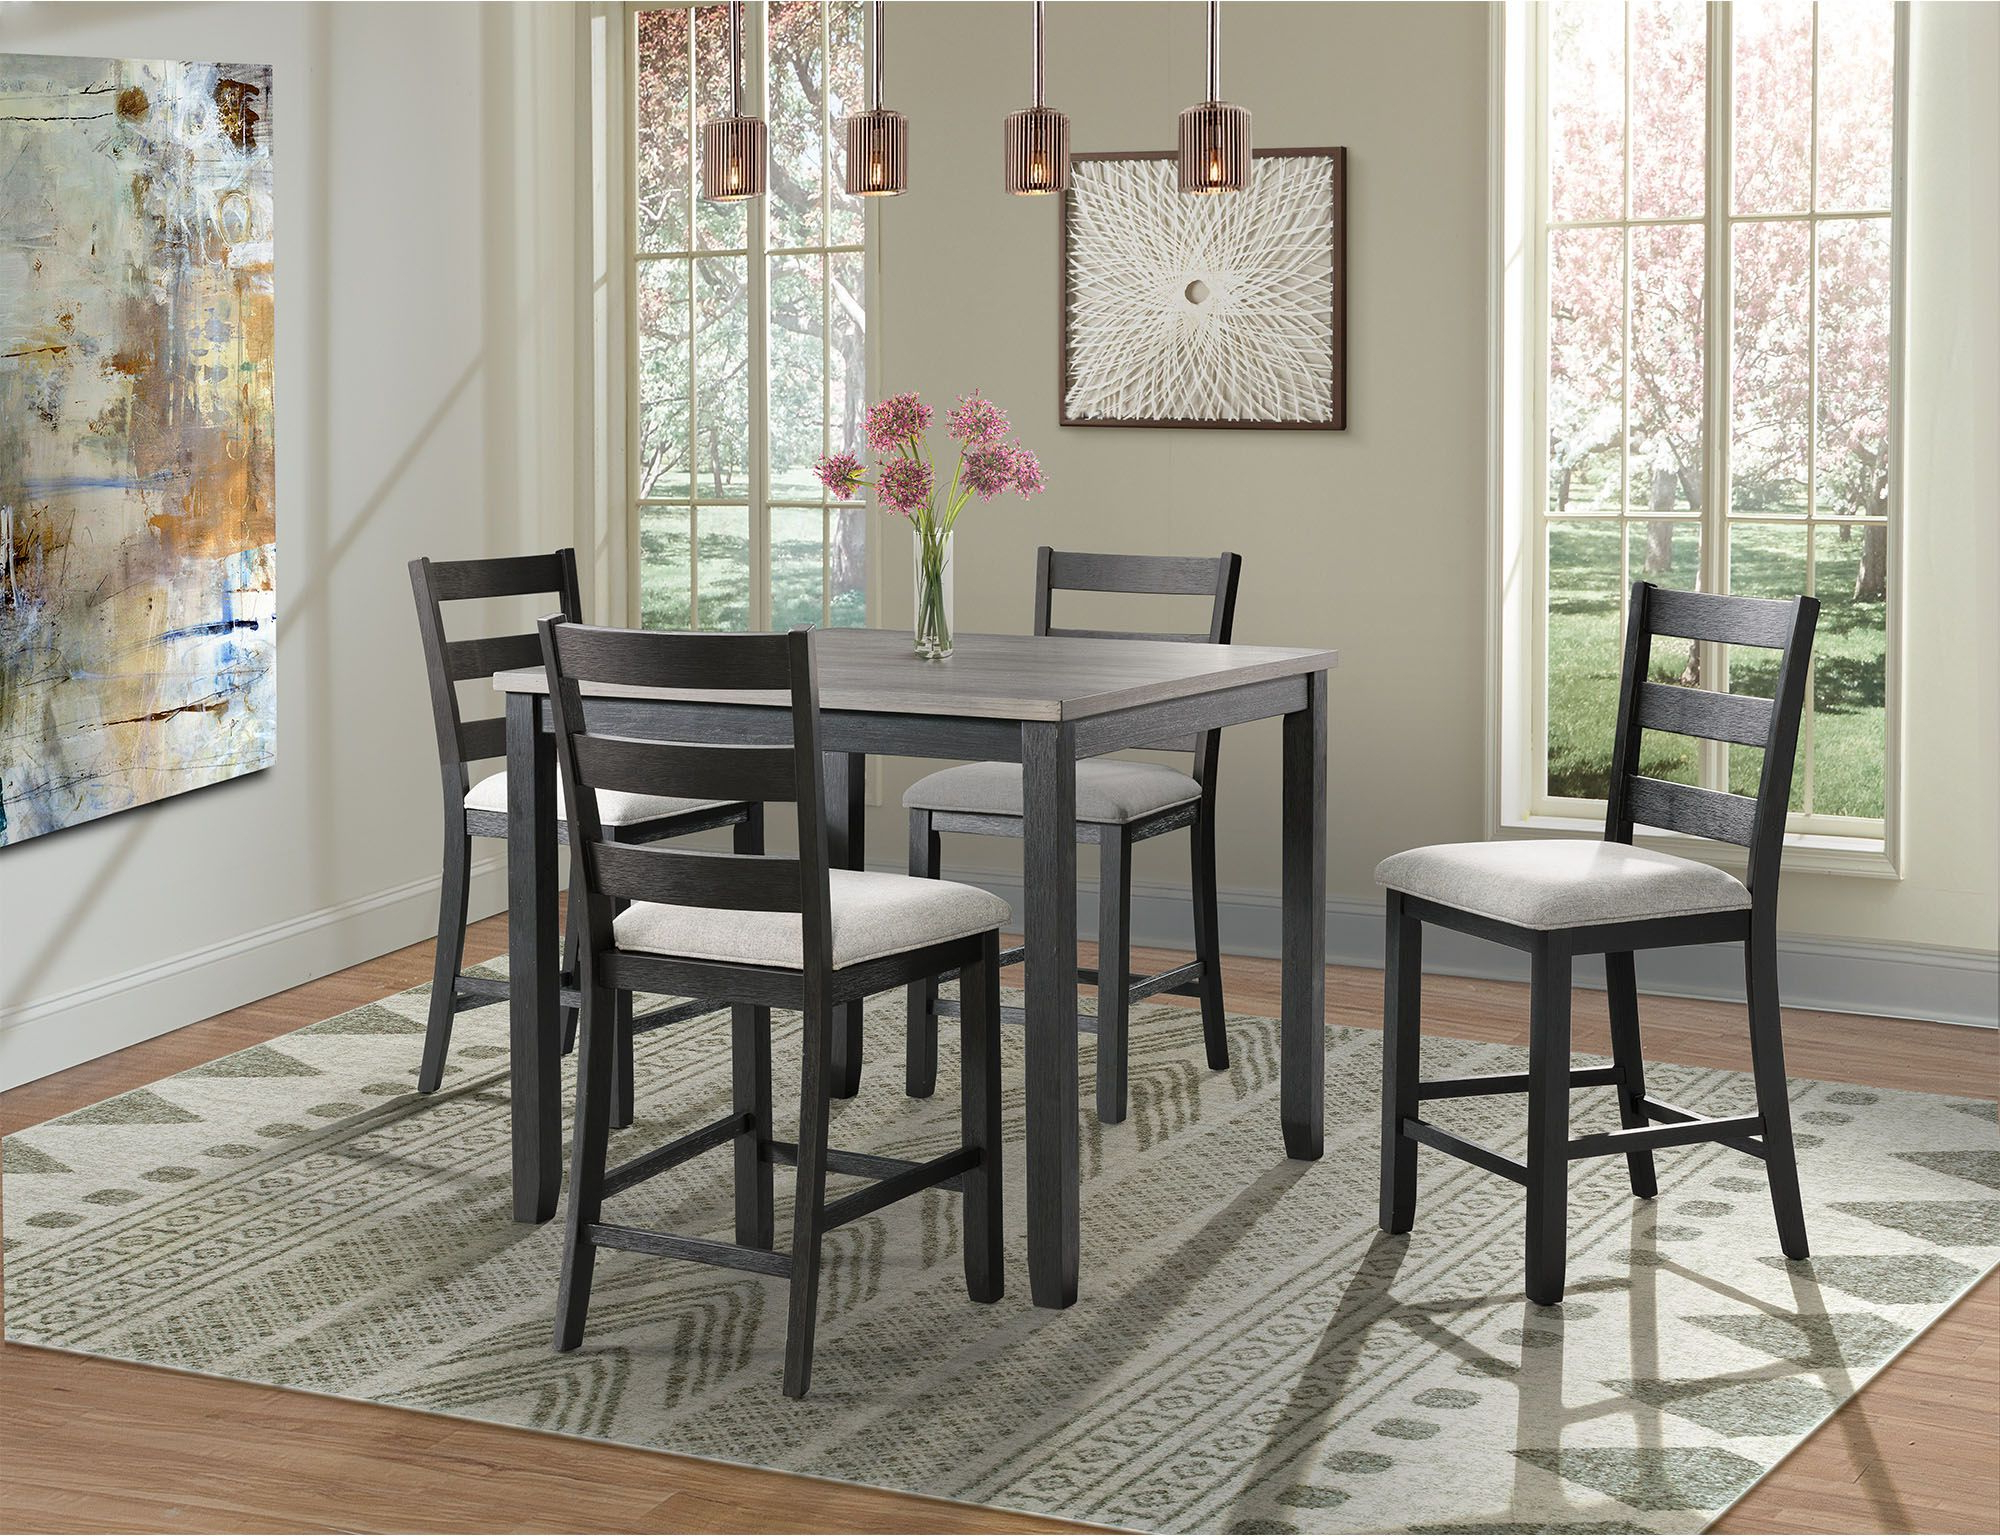 Kinsler 3 Piece Bistro Sets regarding Newest Kona Gray And Black 5 Piece Counter Height Dining Room Set From